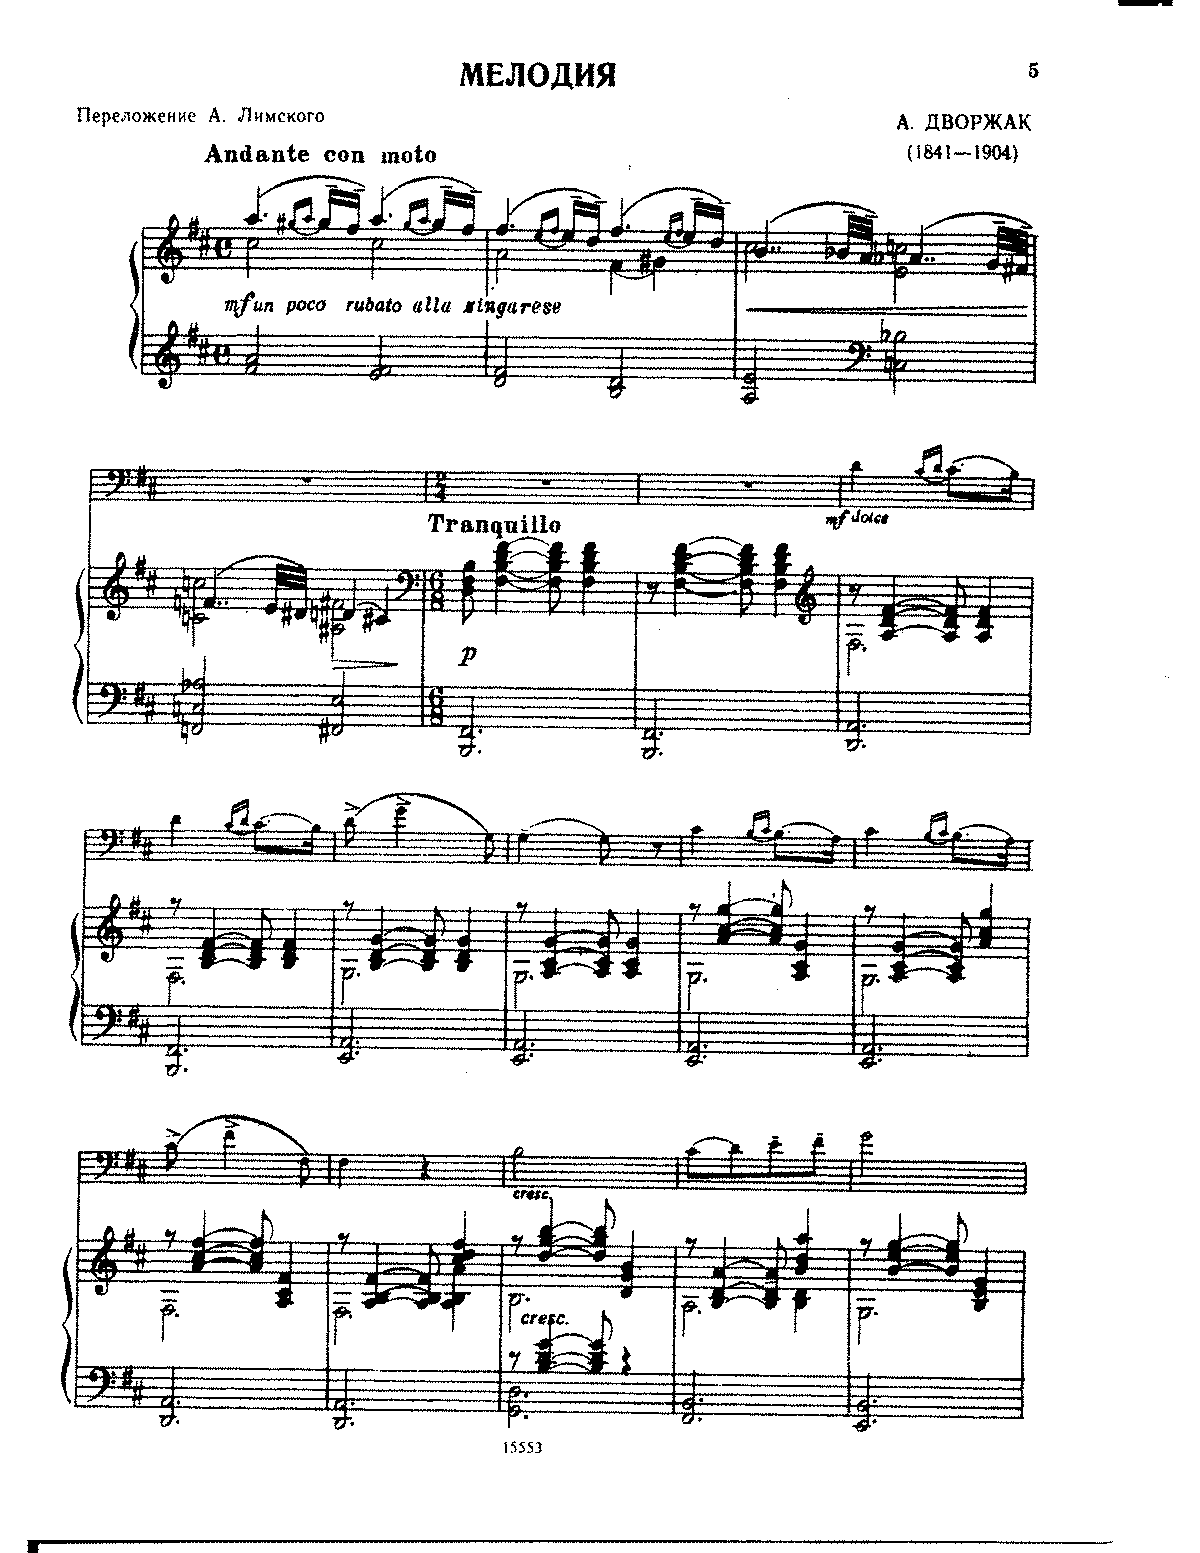 Dvorak-Limskov - Melody (cello and piano).pdf